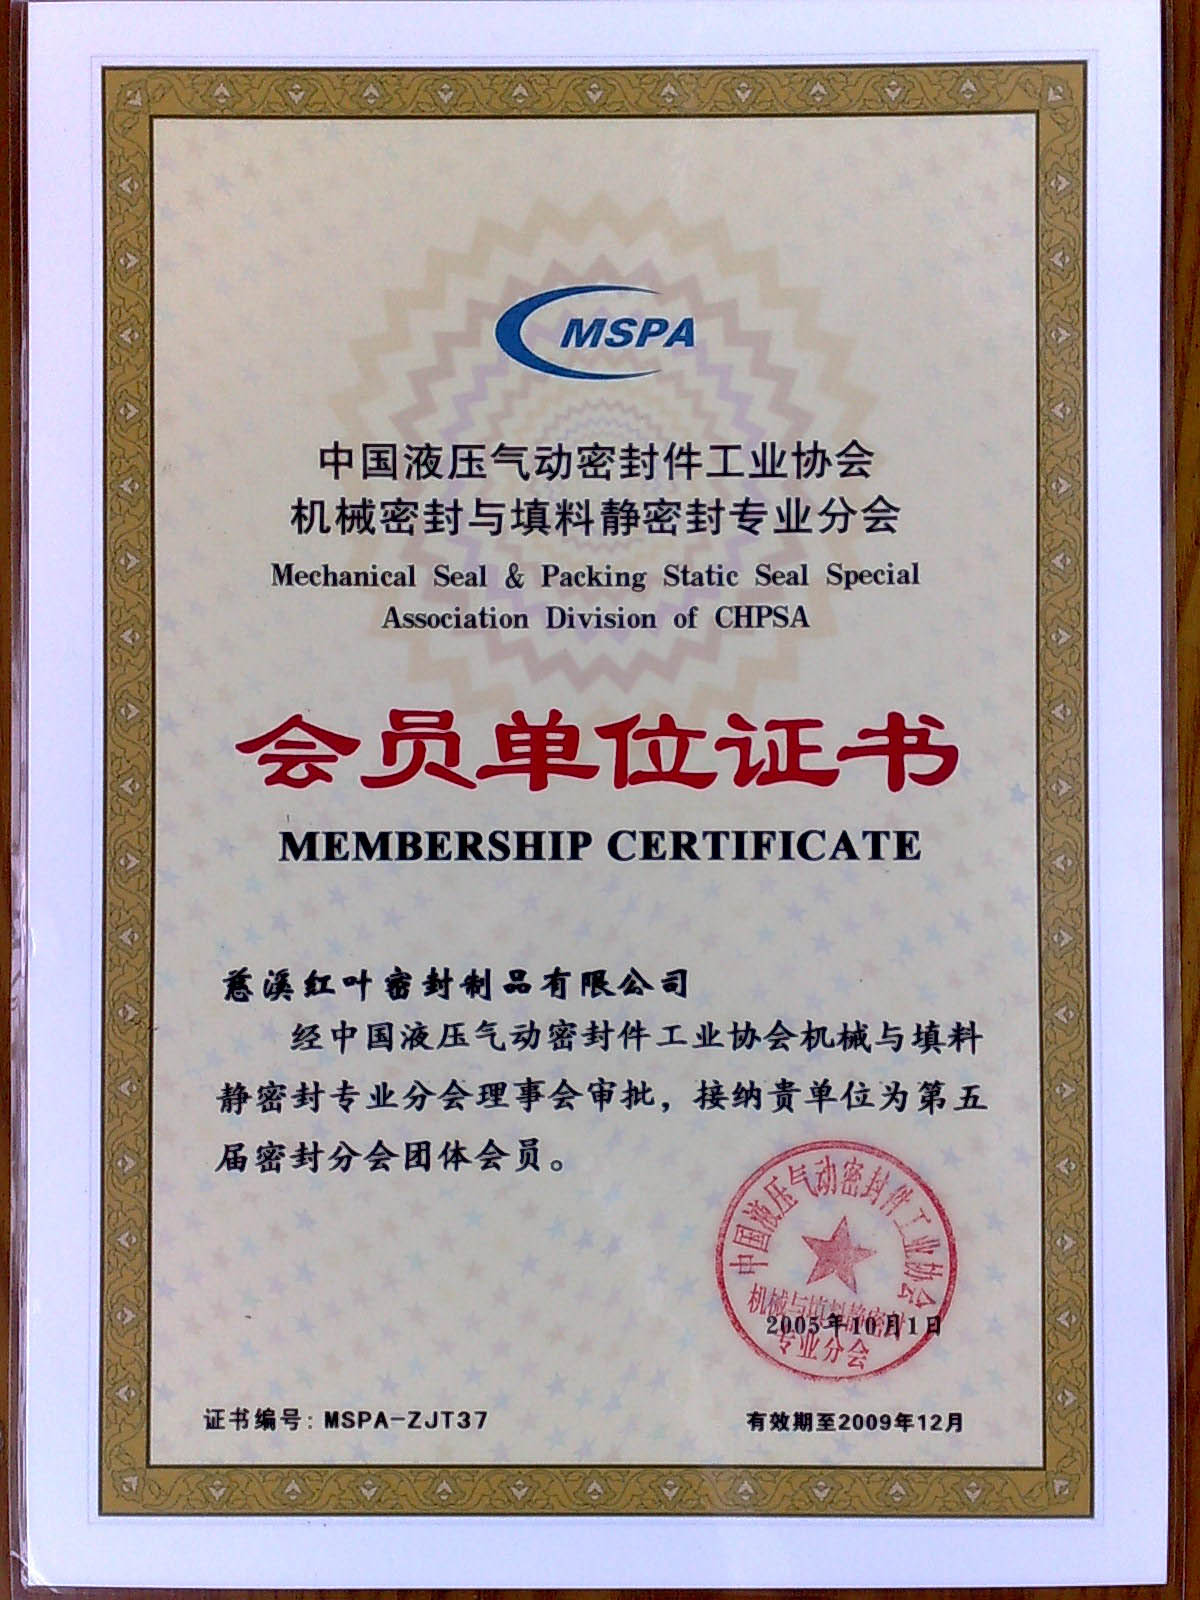 Mechanical Seal & Packing Static Seal Special Assoction Division of CHPSA